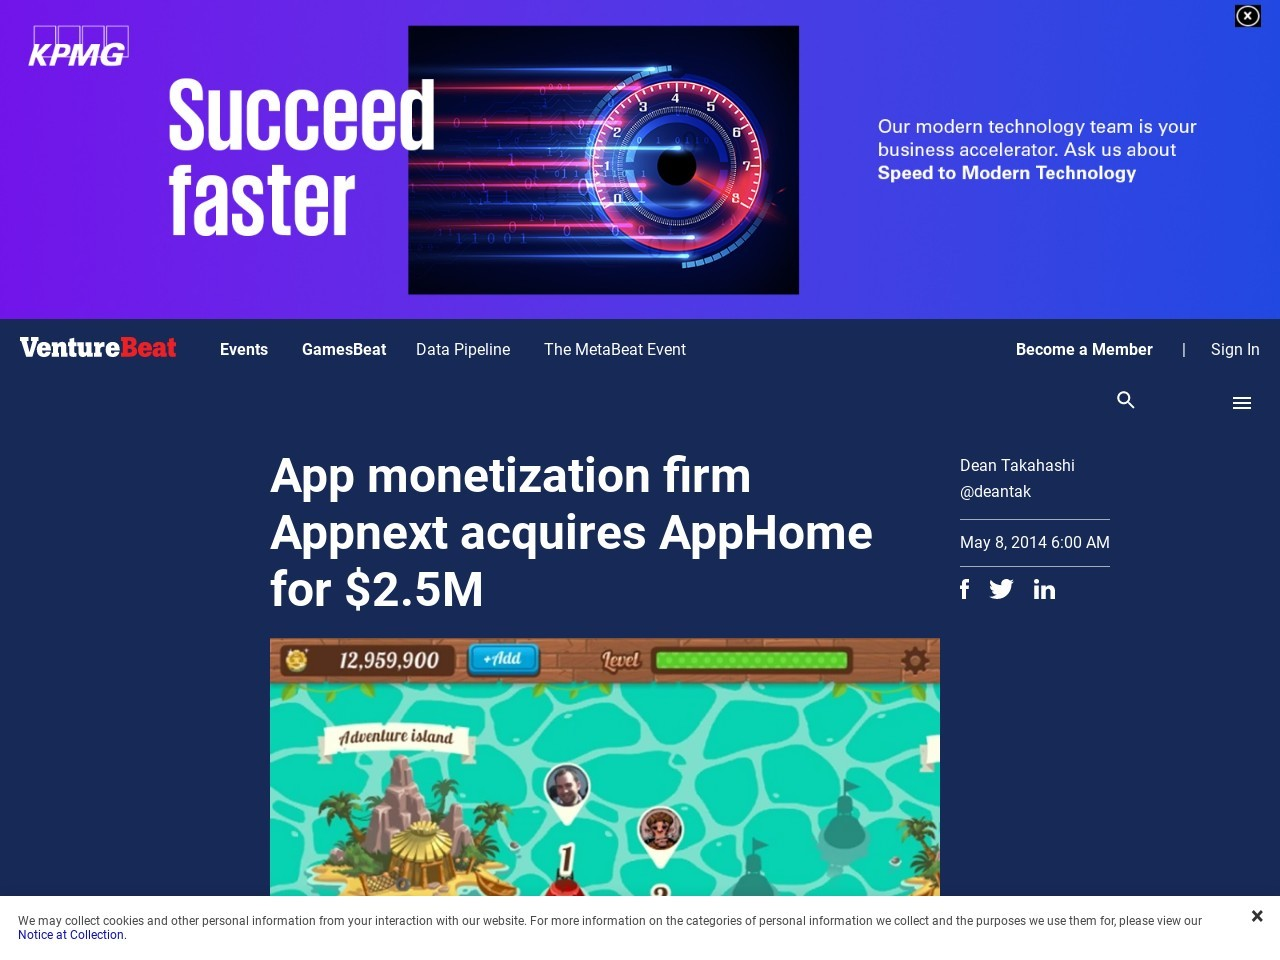 App monetization firm Appnext acquires AppHome for $2.5M